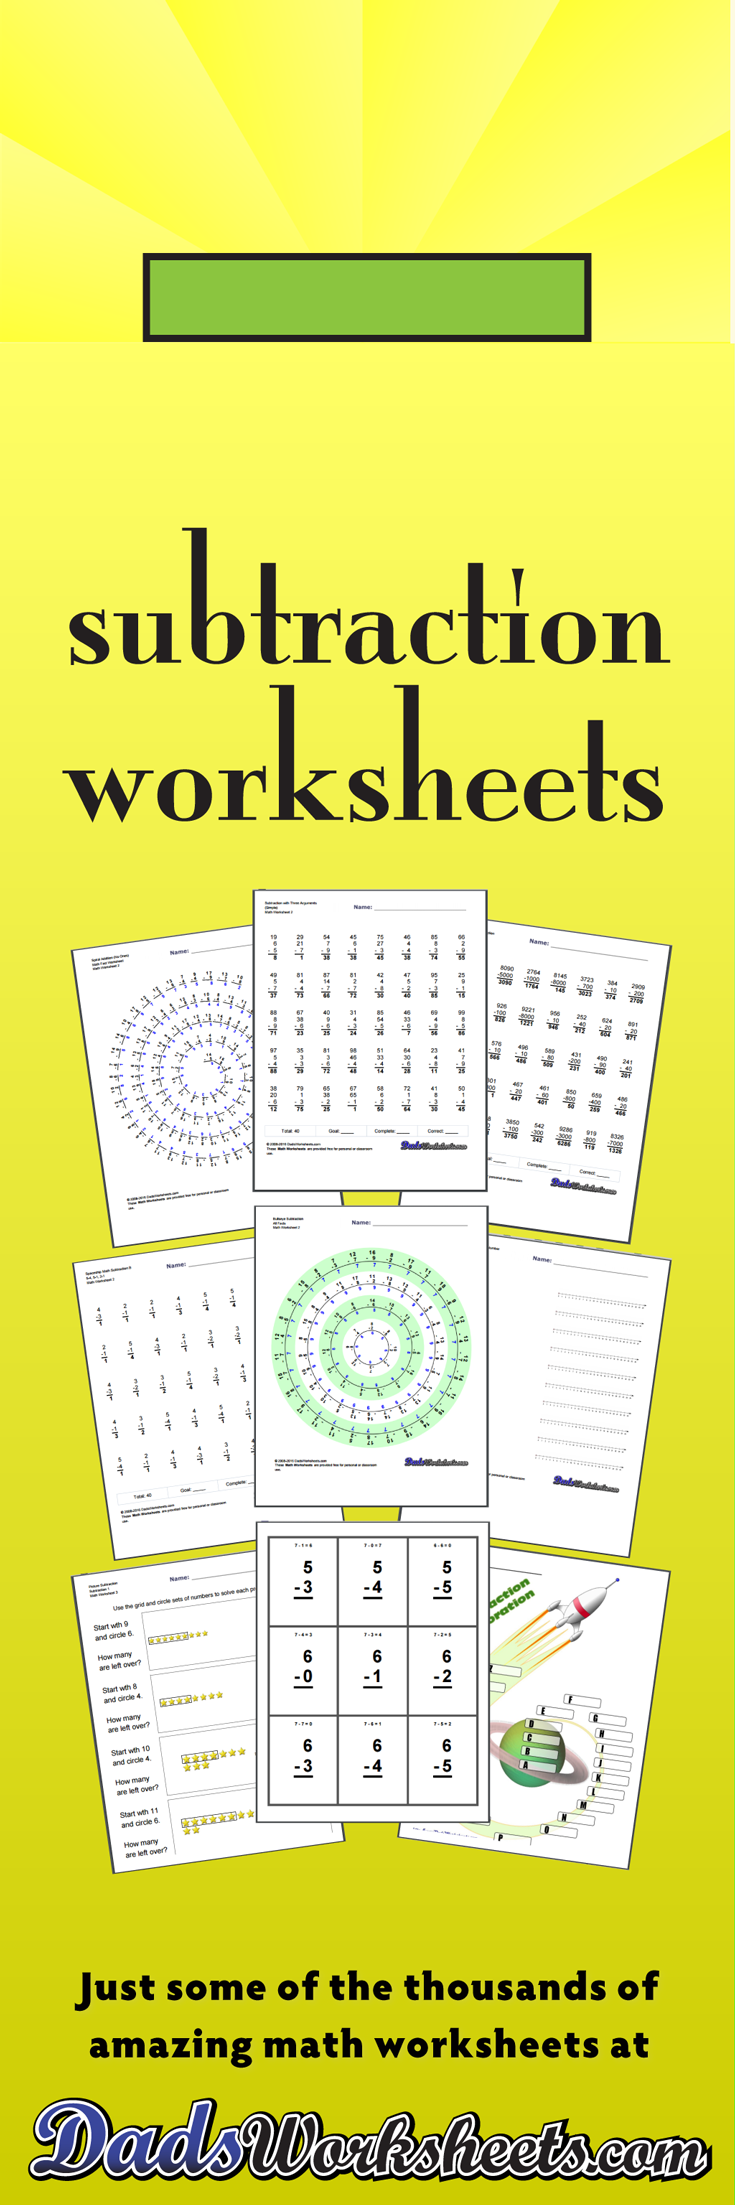 Worksheets – Trade First Subtraction Worksheets